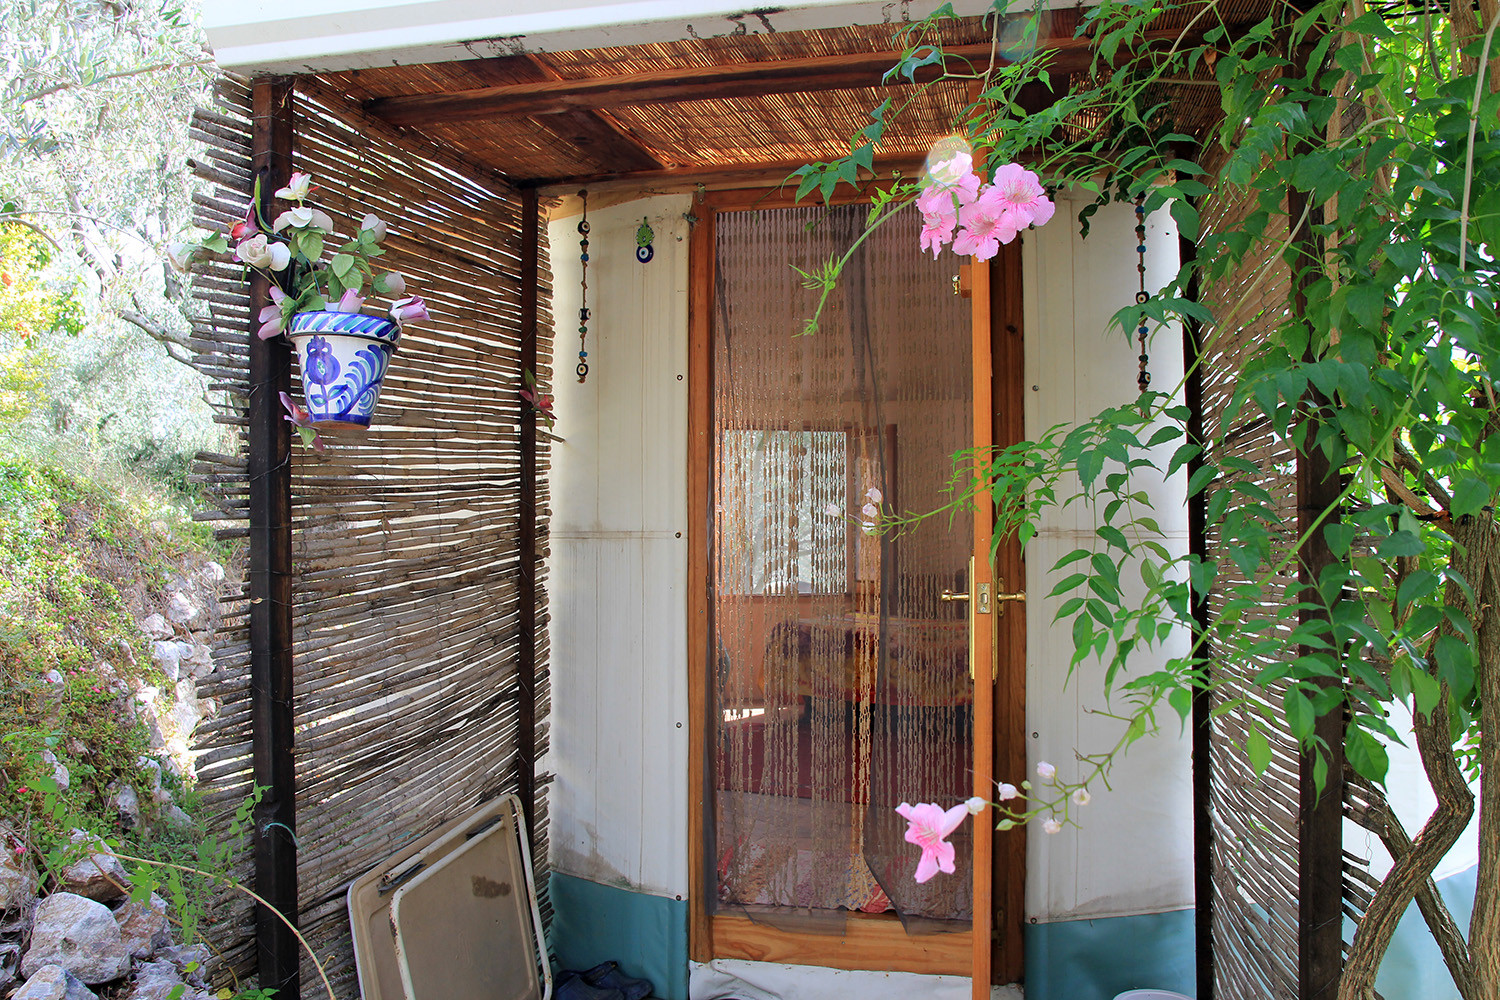 The entrance of the Yurt